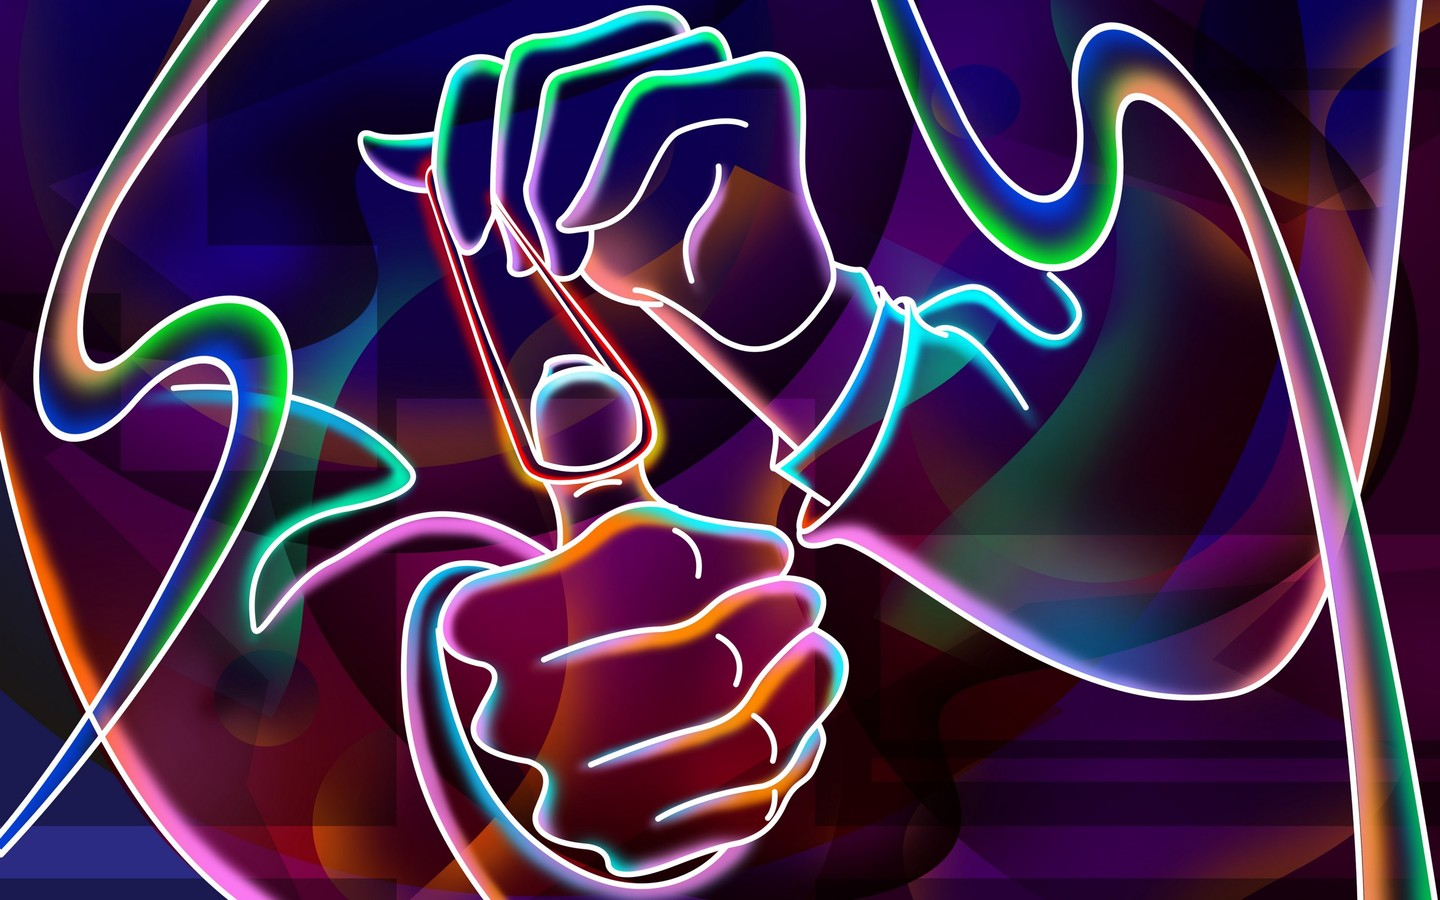 Strictly Wallpaper Neon Wallpapers 3